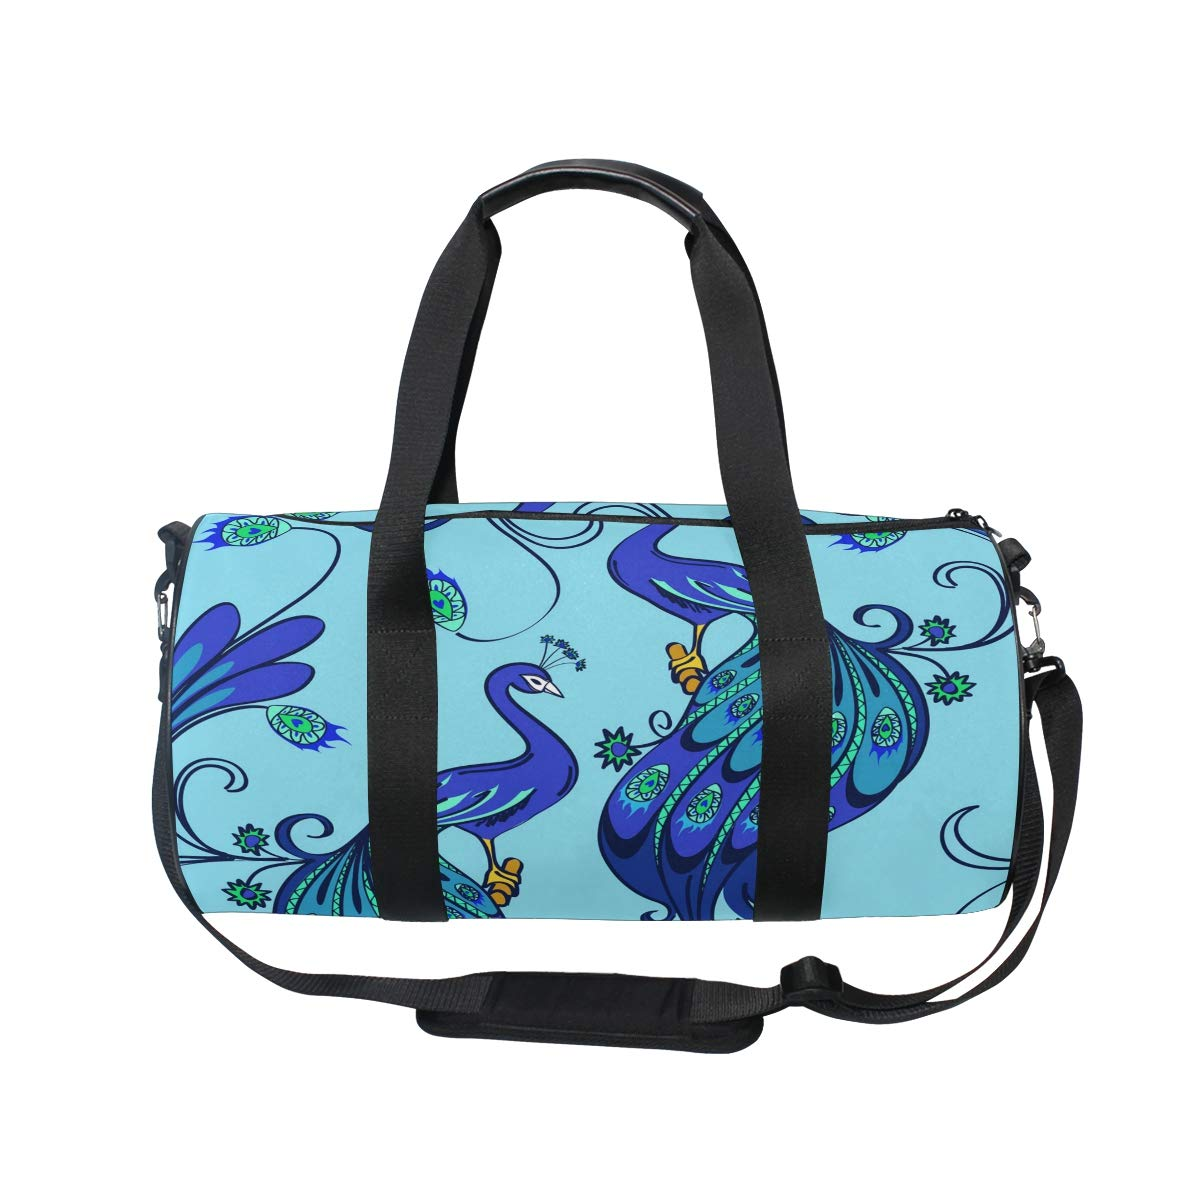 WIHVE Gym Duffel Bag Blue Magic Peacocks Sports Lightweight Canvas Travel Luggage Bag